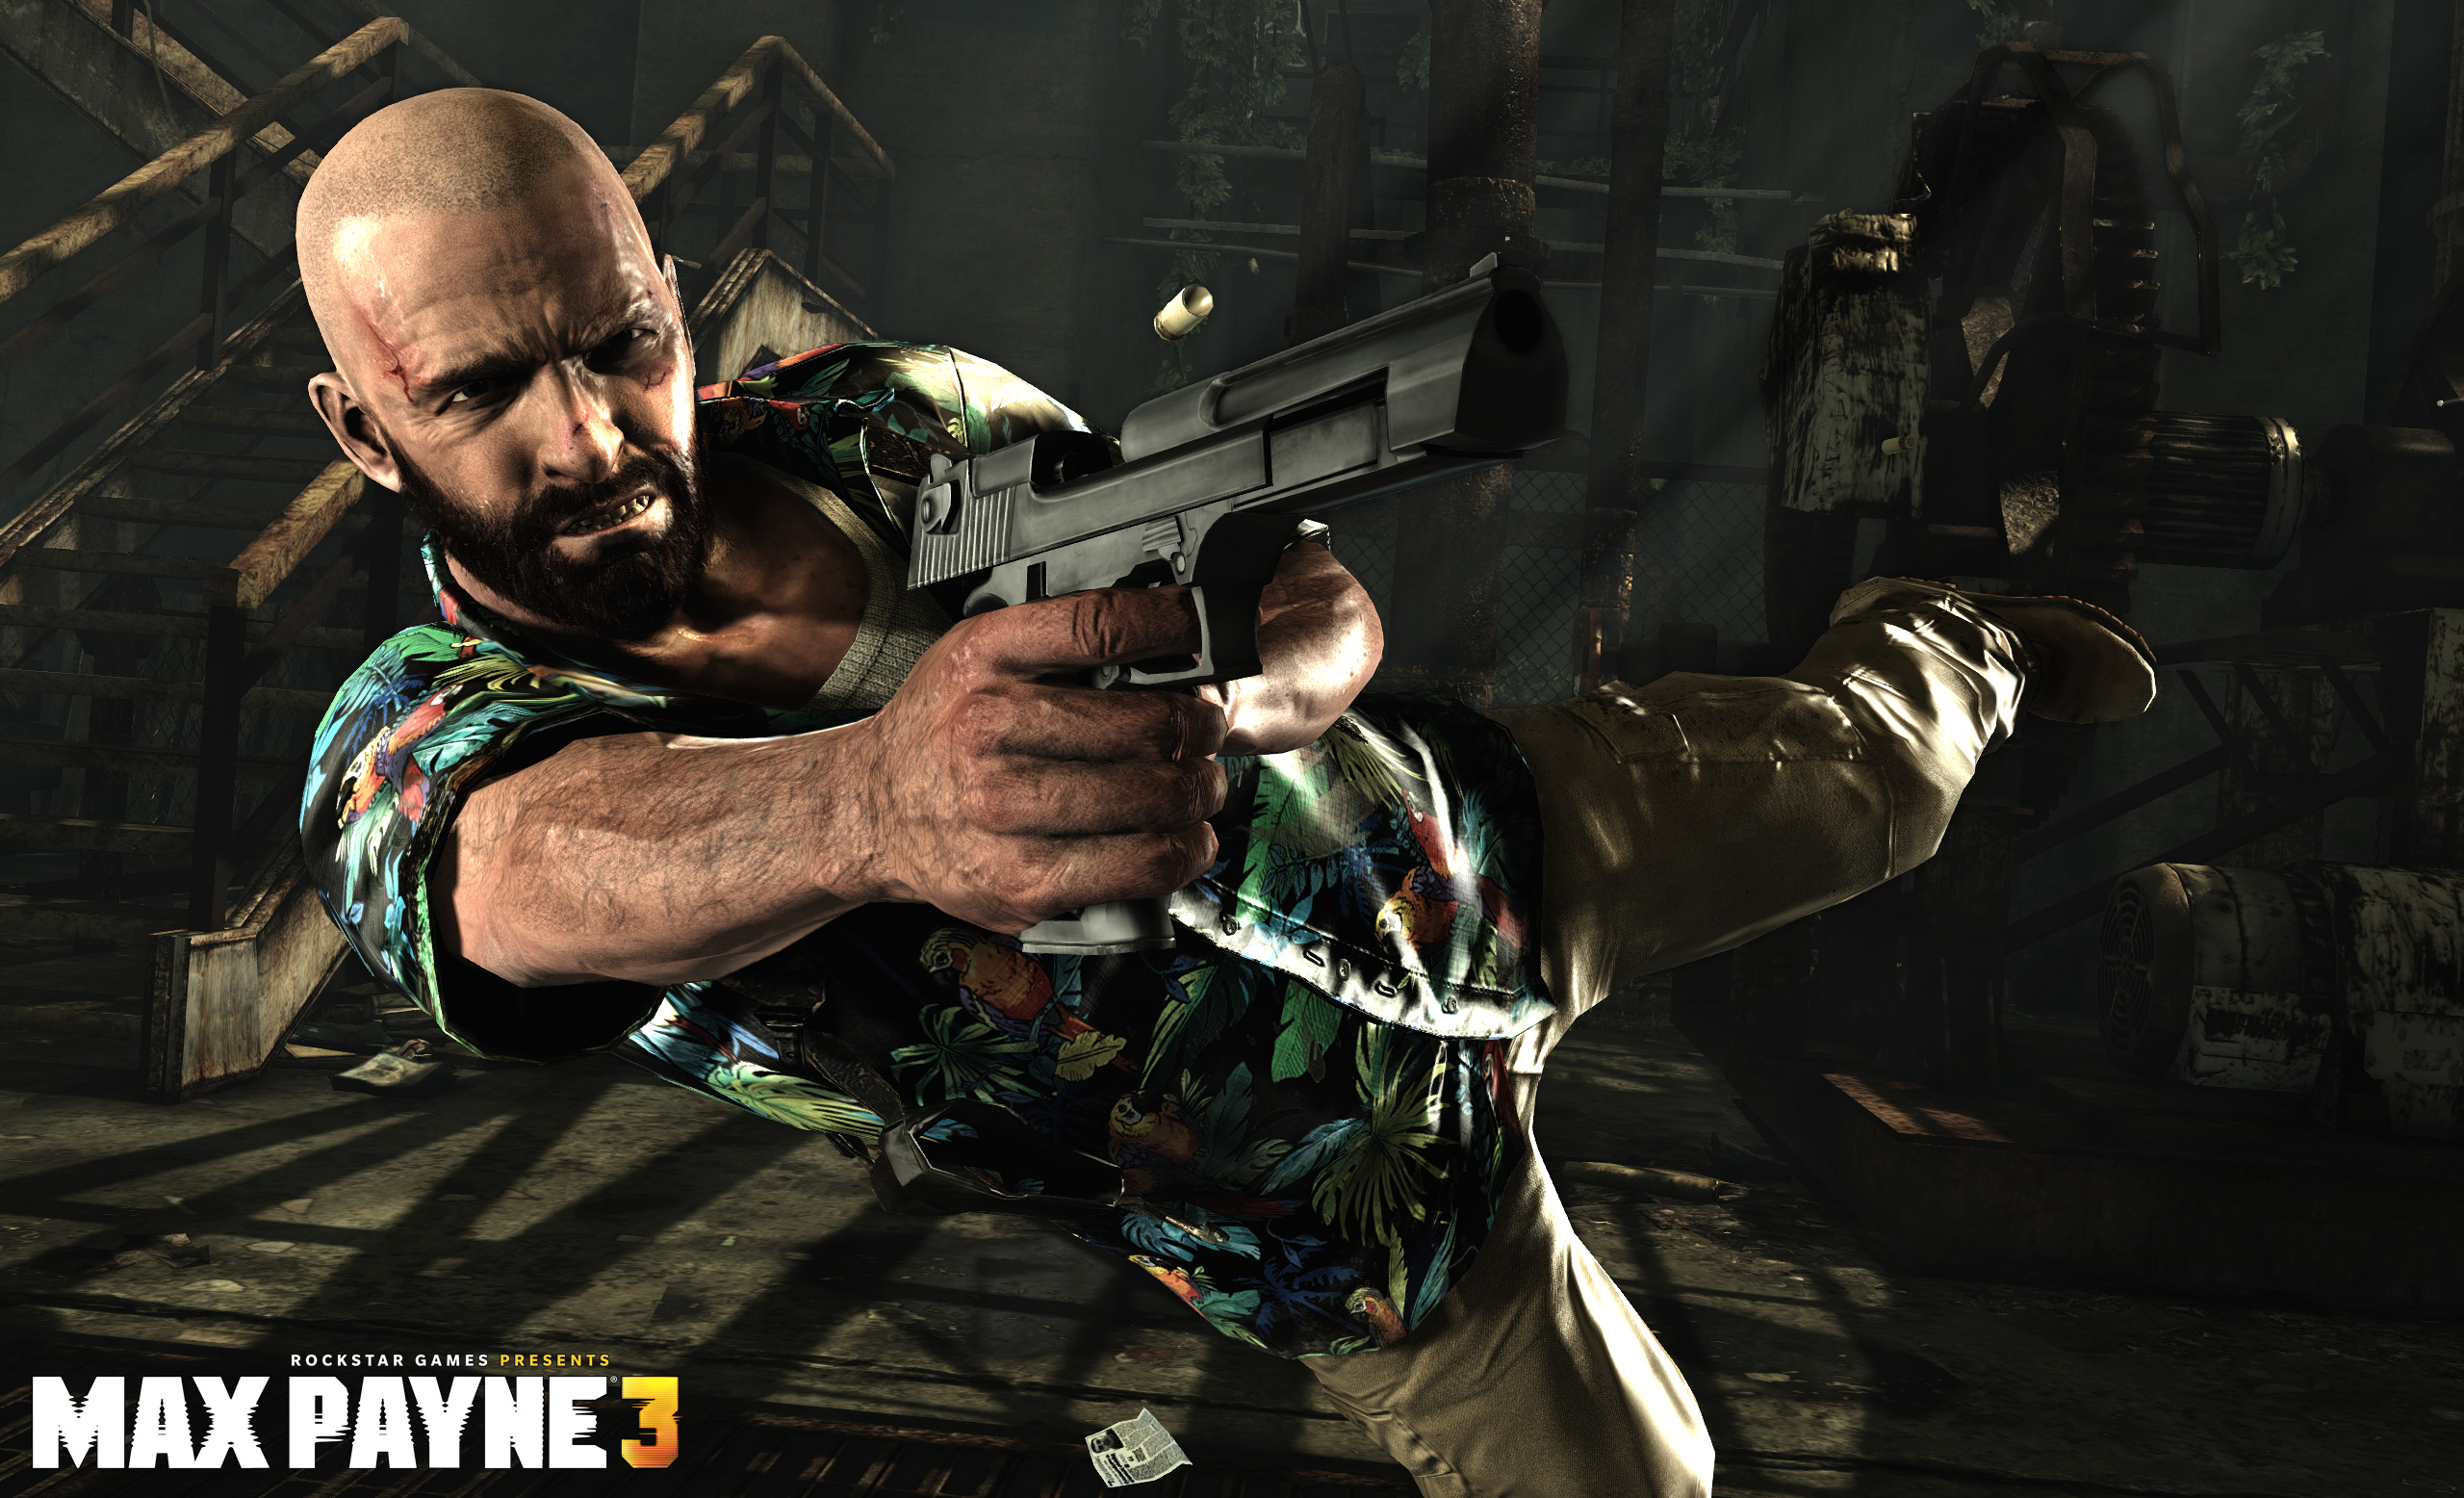 maxpayne3 PC Max Payne 3 available for PC today